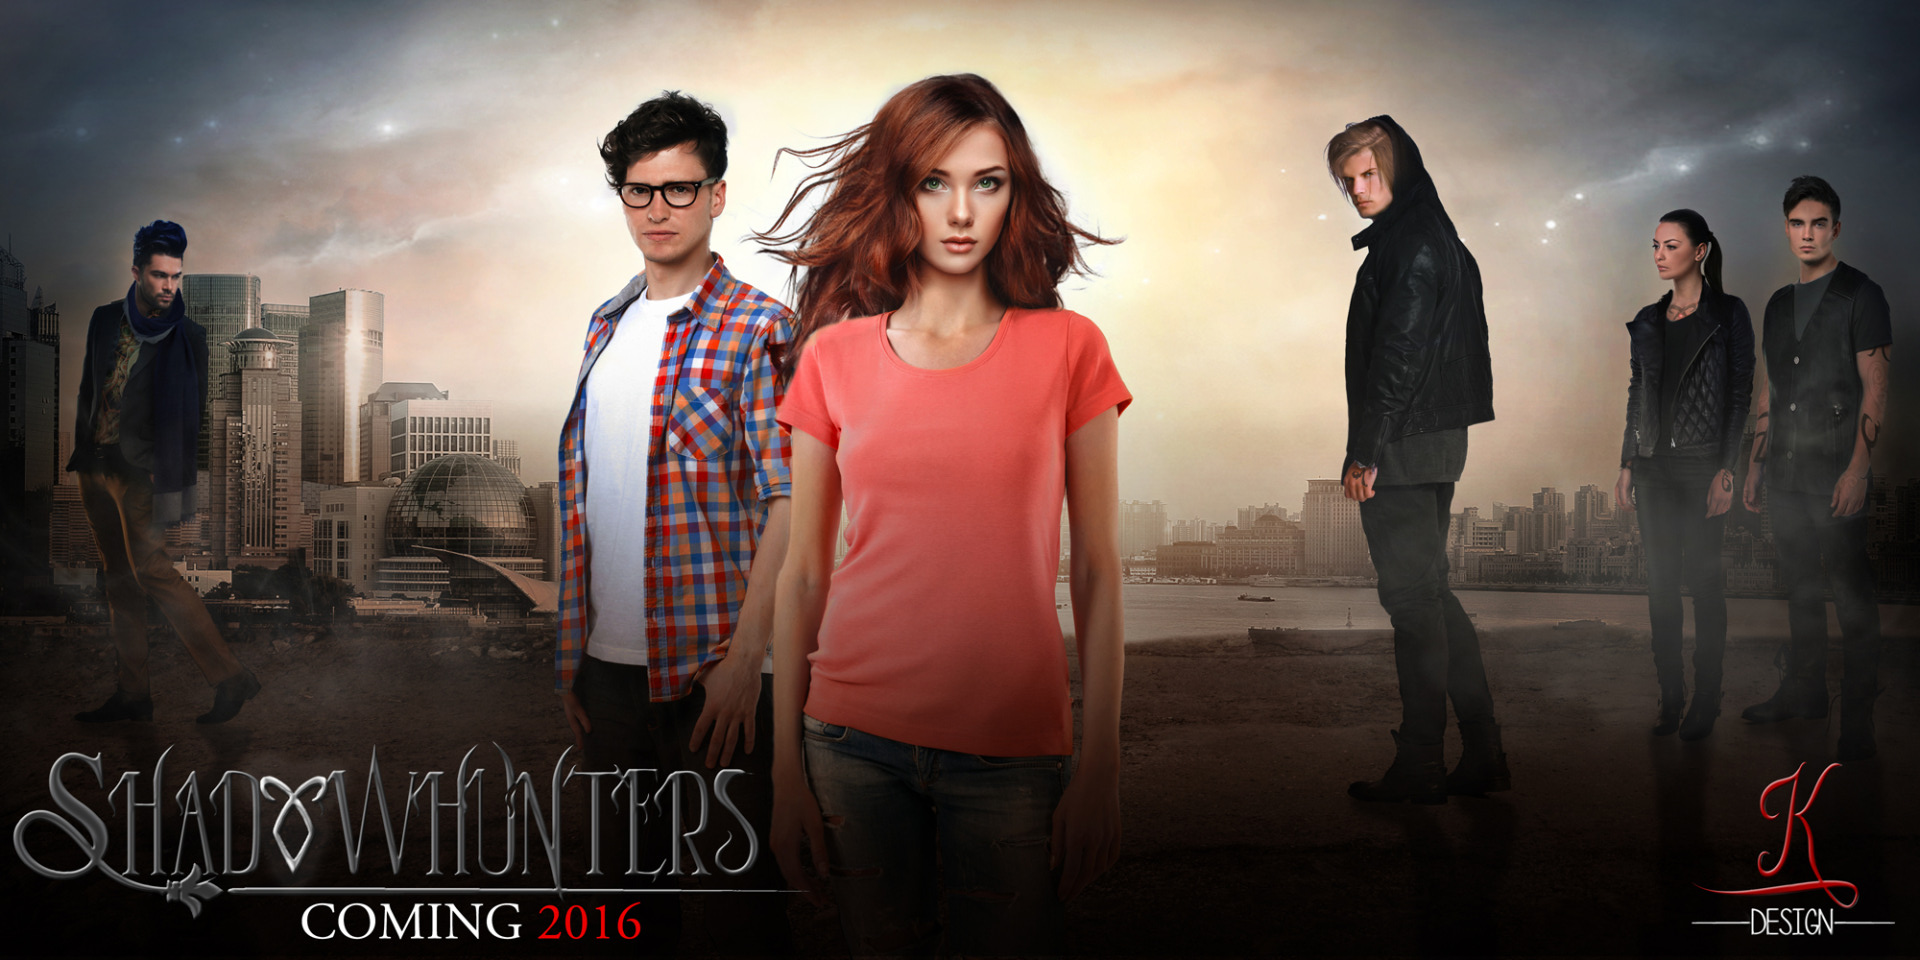 shadowhunters-tv-show-fanmade-poster-shadowhunters-tv-show-38329675-1920-960